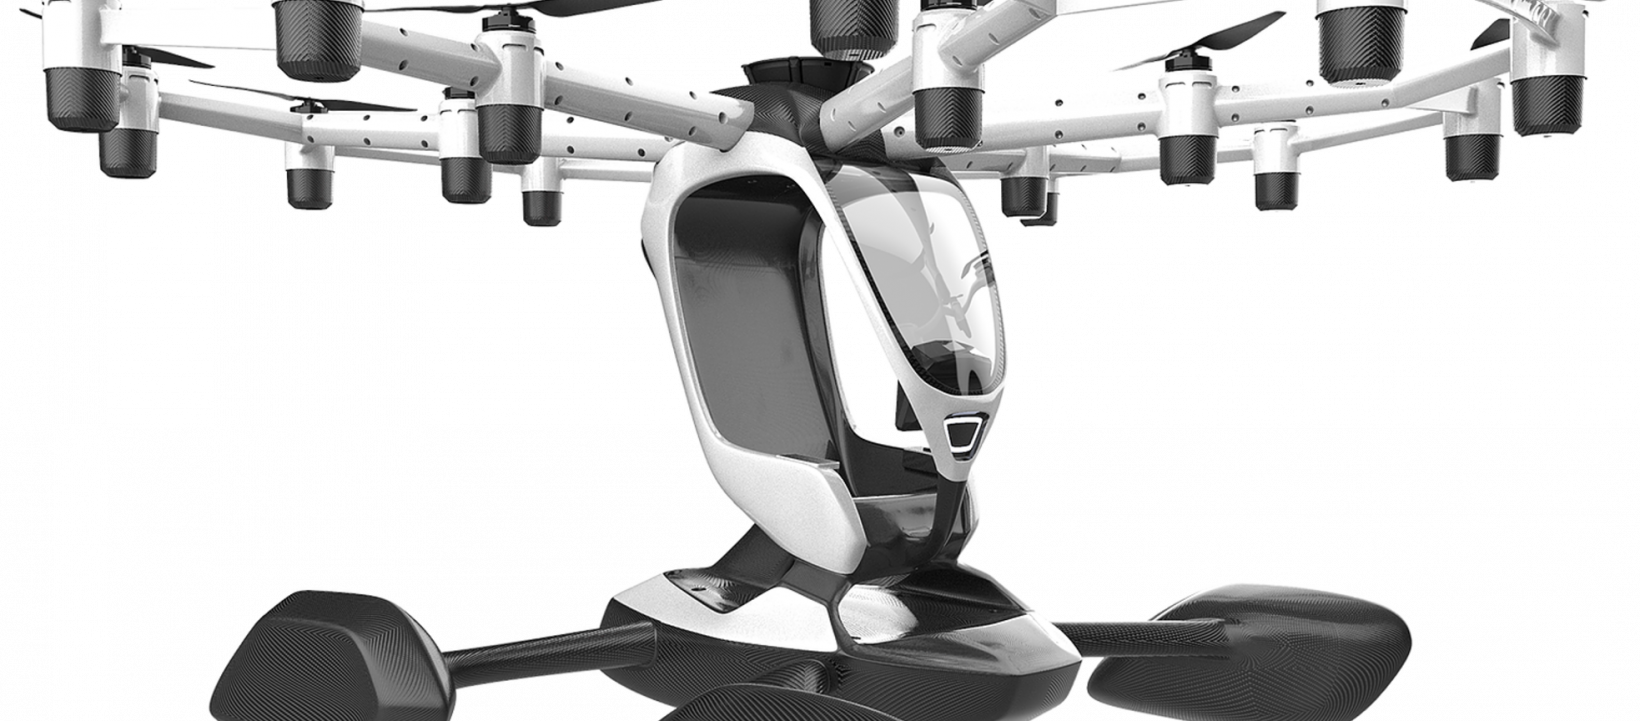 the Lift single passenger drone doesn't need a pilot's license